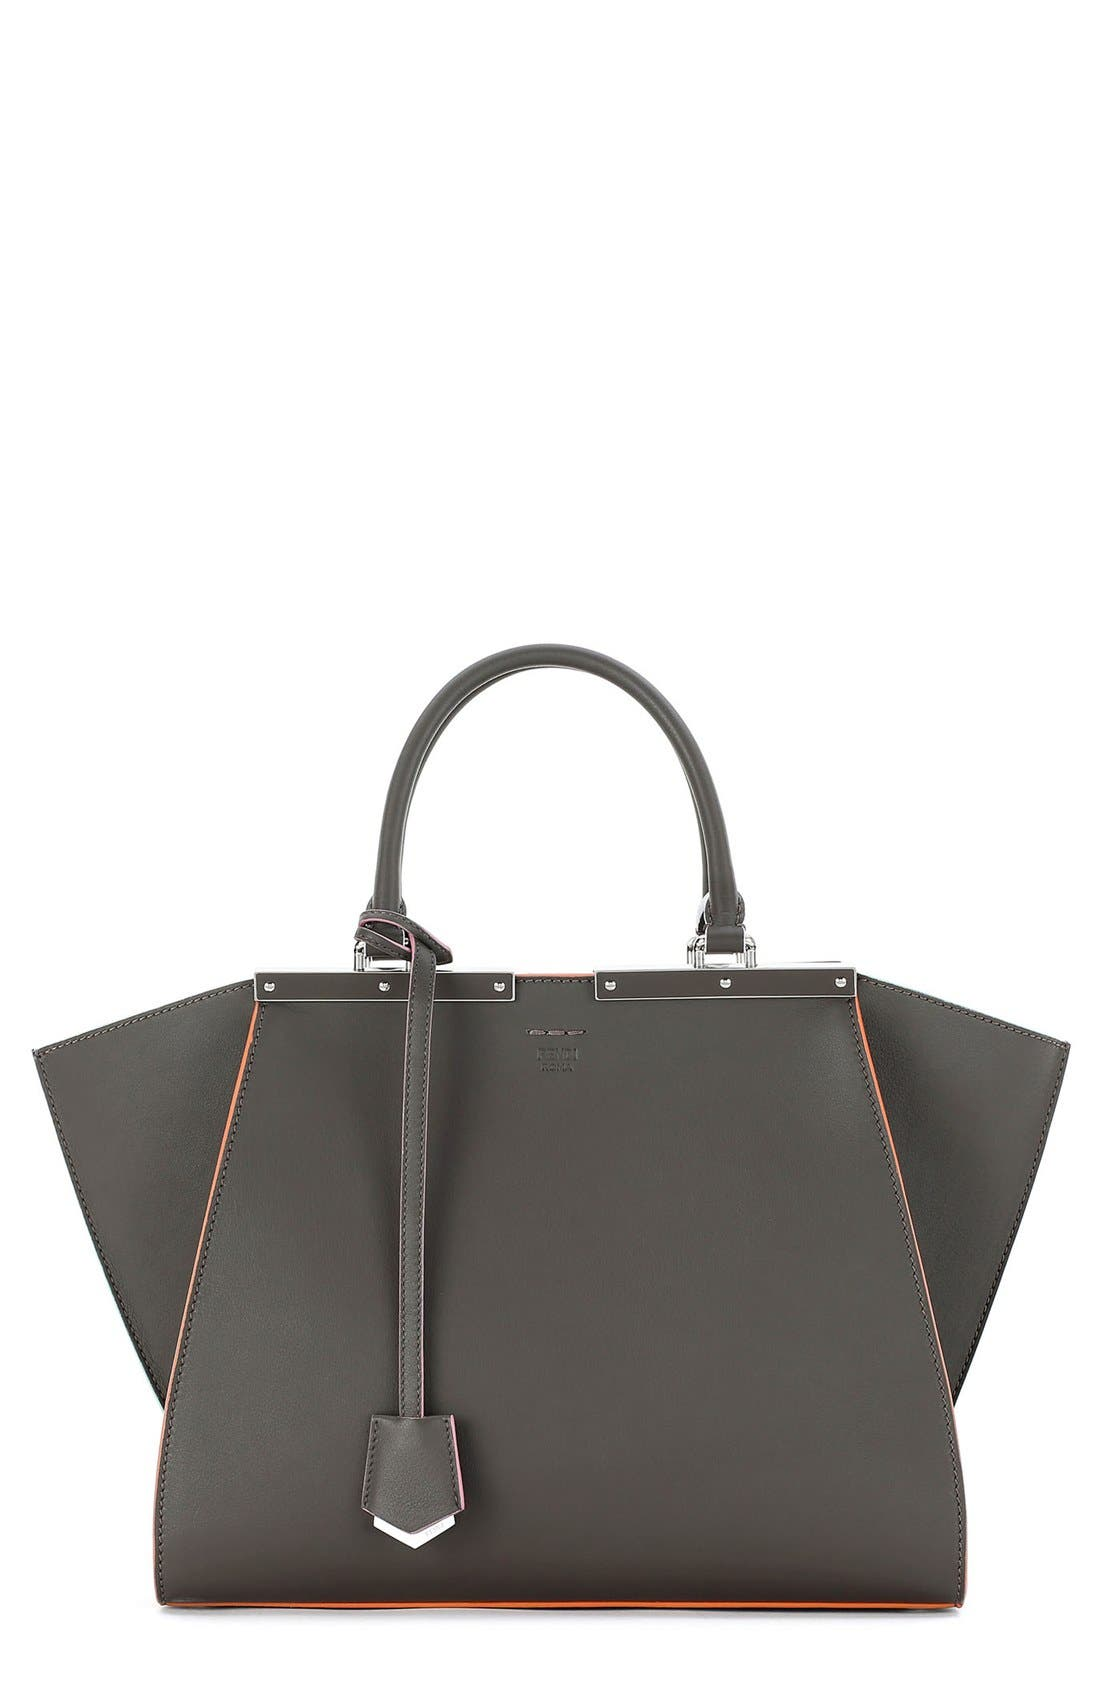 '3Jours' Leather Shopper,                         Main,                         color, Coal/ Palladium